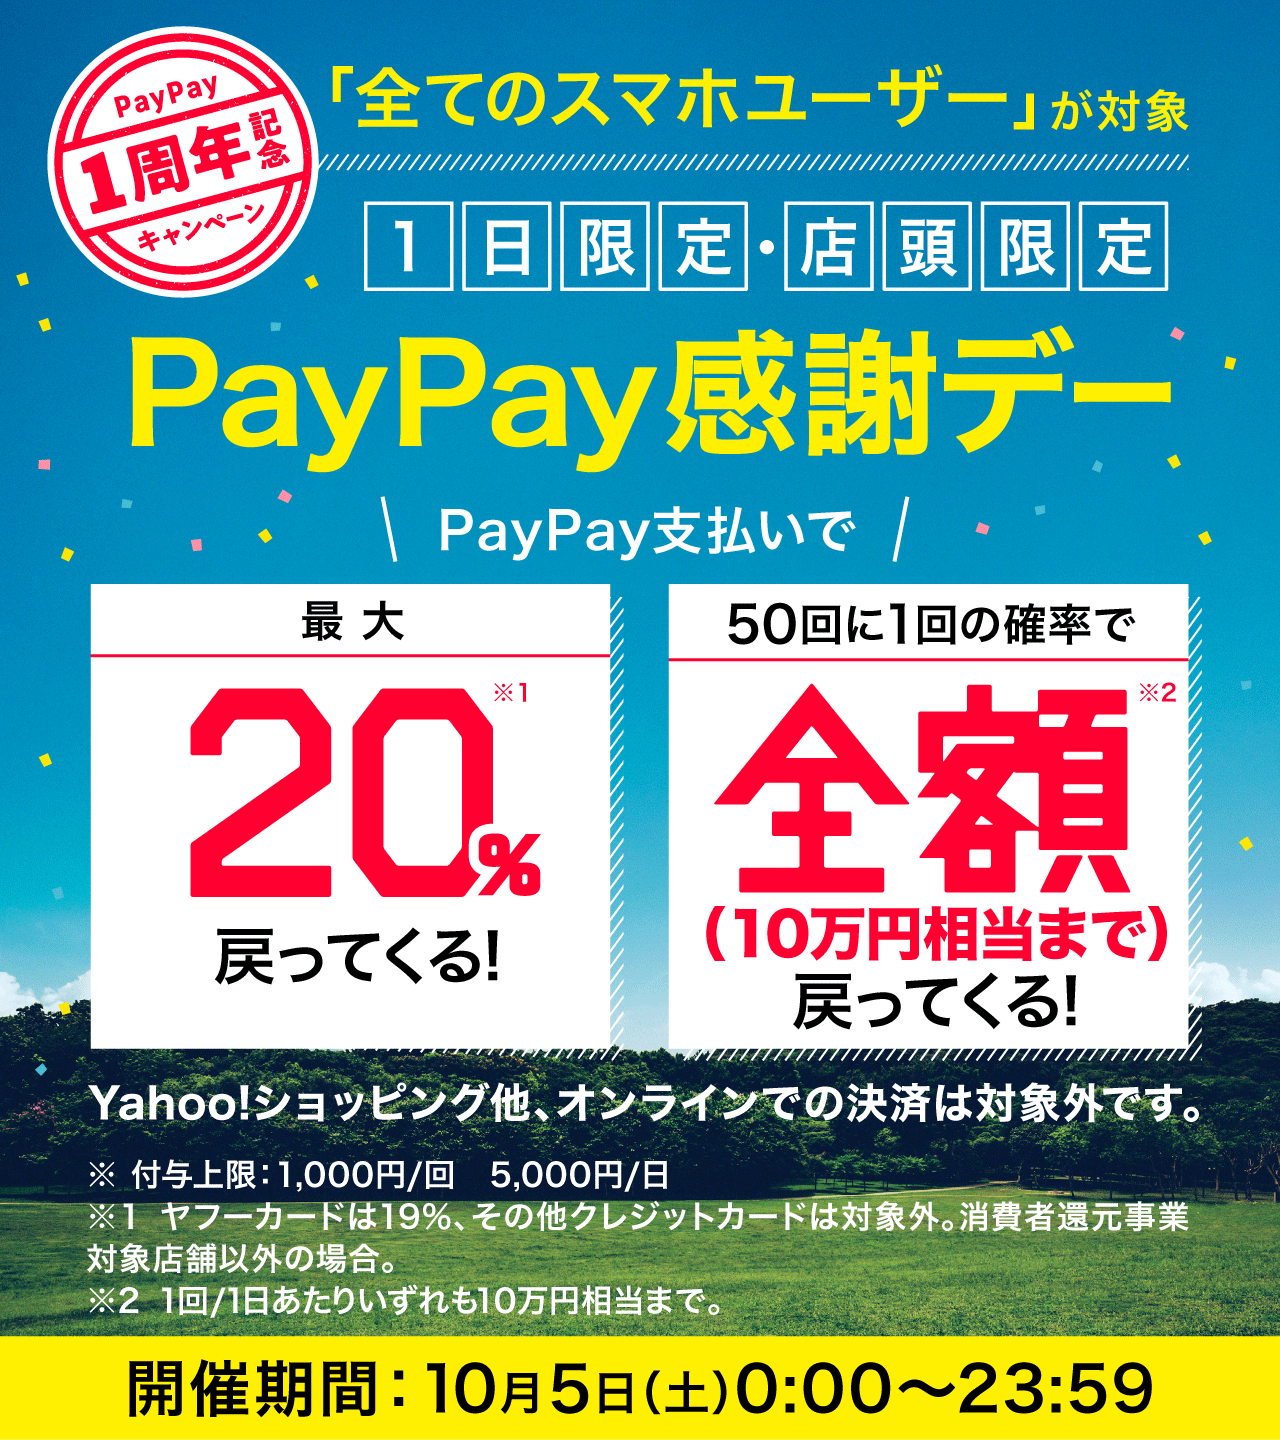 https://image.paypay.ne.jp/page/event/anniversary-20191005/images/img_mv_01.png